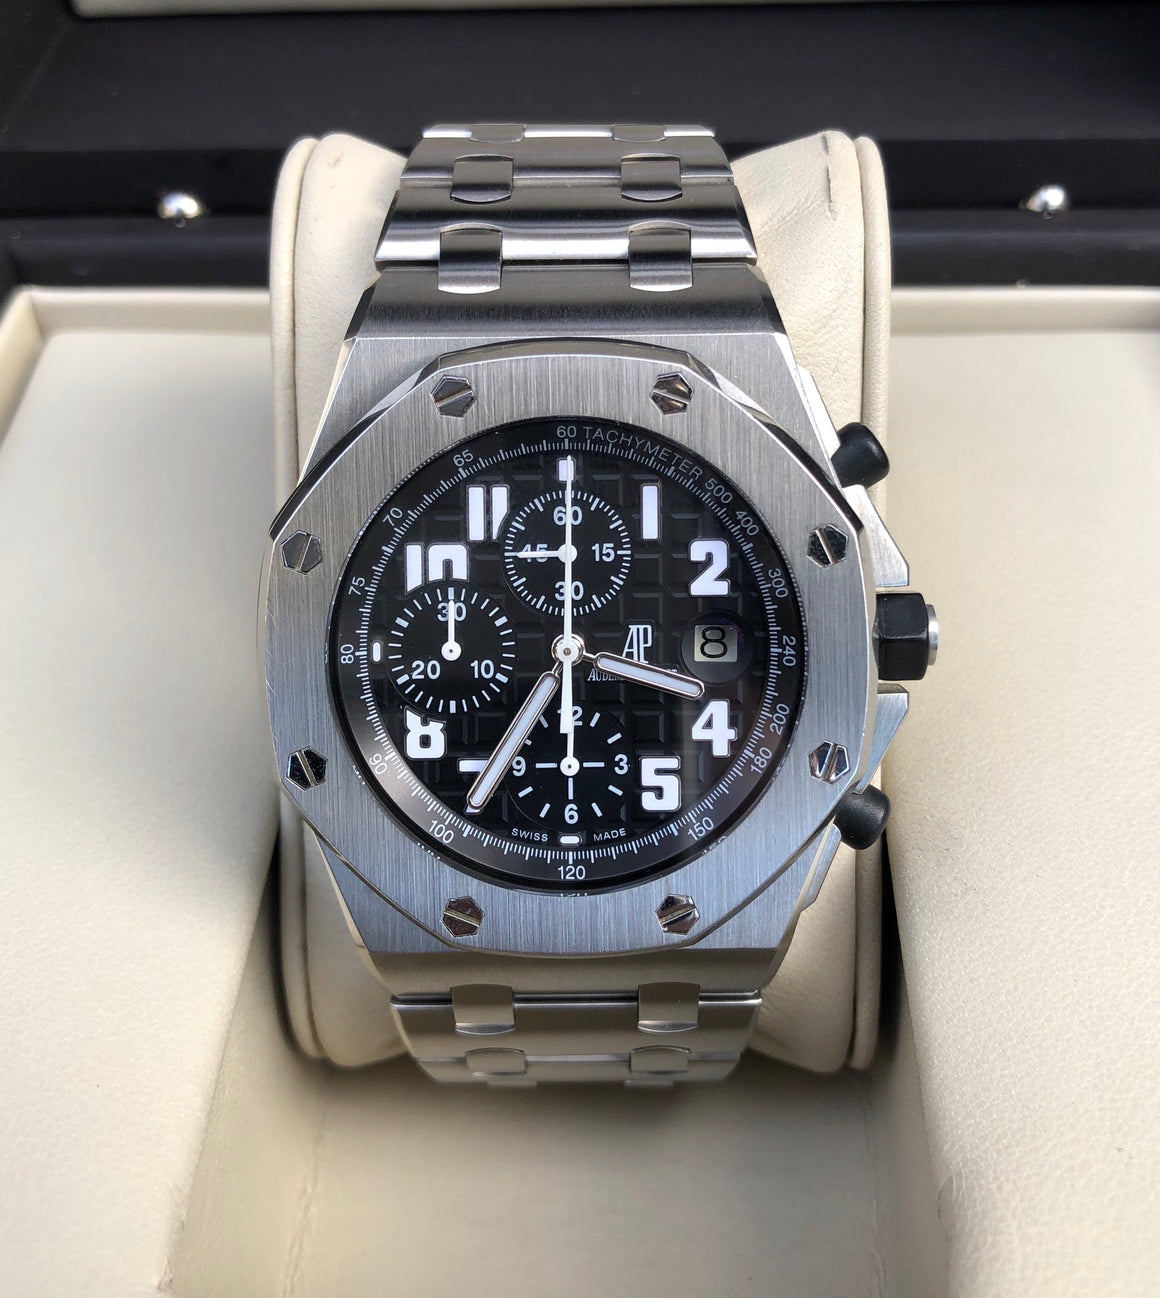 Audemars Piguet Royal Oak Offshore Black Themes 26170st.OO.1000st.08